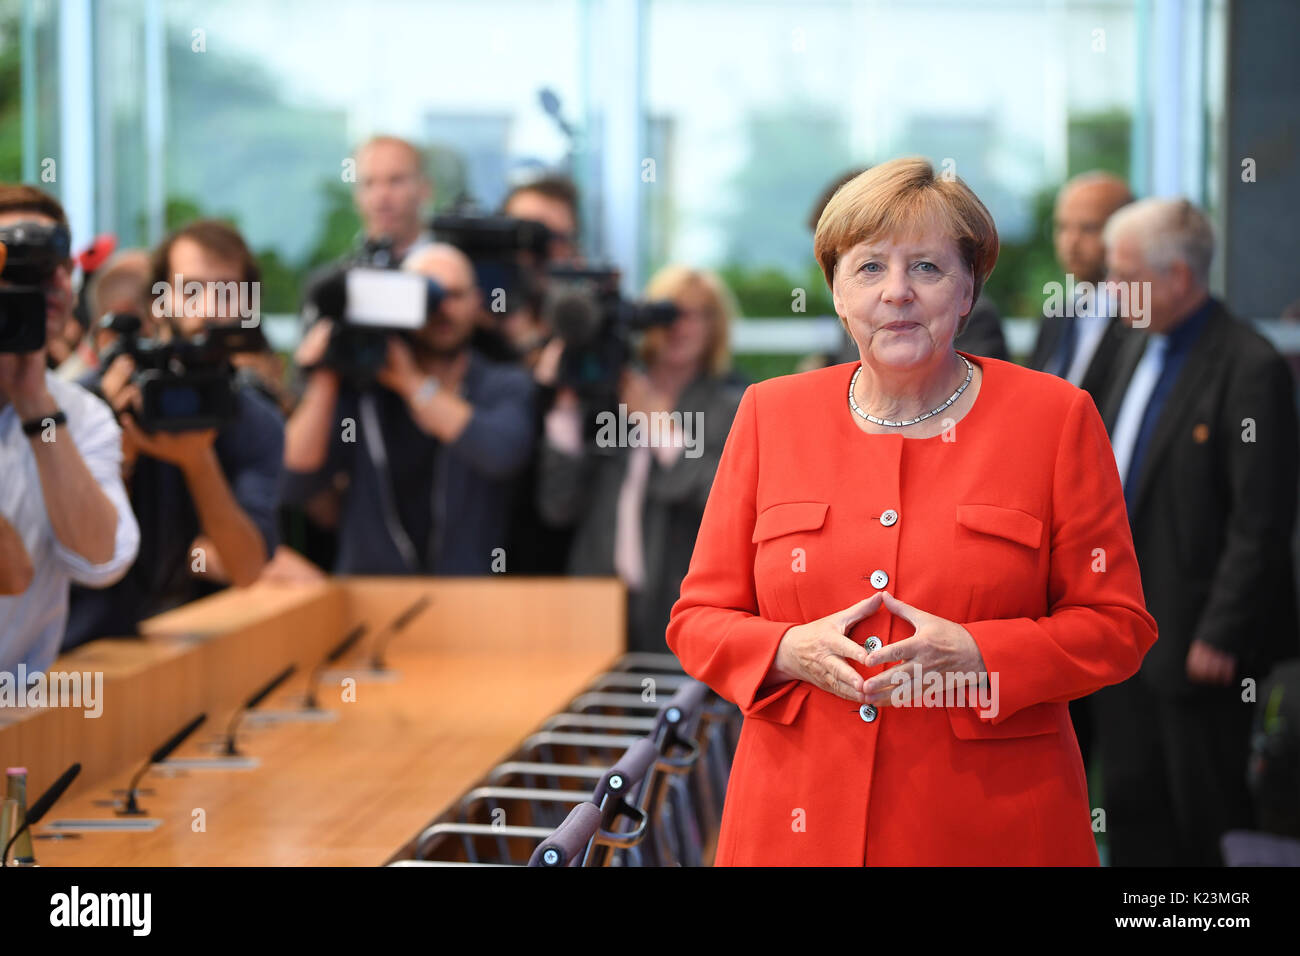 Berlin, Germany. 29th Aug, 2017. German Chancellor Angela Merkel (CDU) arrives at the summer press conference at the federal press confernece ('Bundespressekonferenz') in Berlin, Germany, 29 August 2017. Photo: Bernd von Jutrczenka/dpa/Alamy Live News - Stock Image